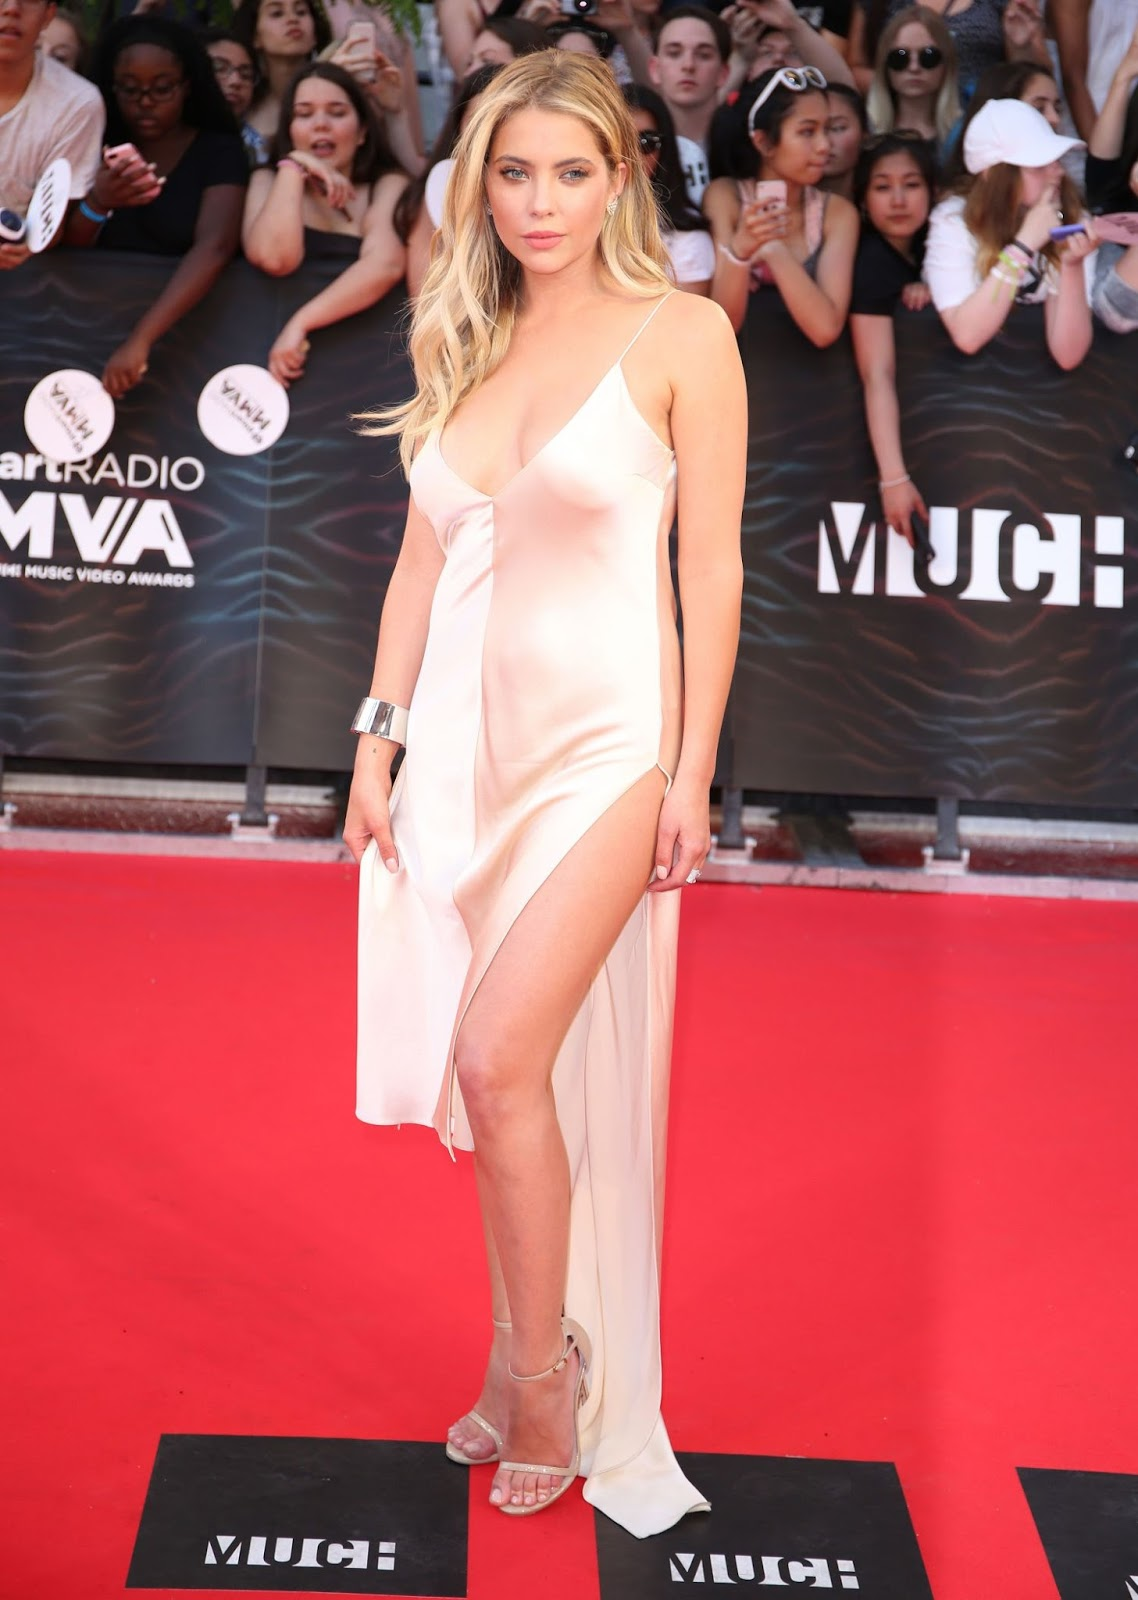 Ashley Benson at MuchMusic Video Awards 2016 in Toronto